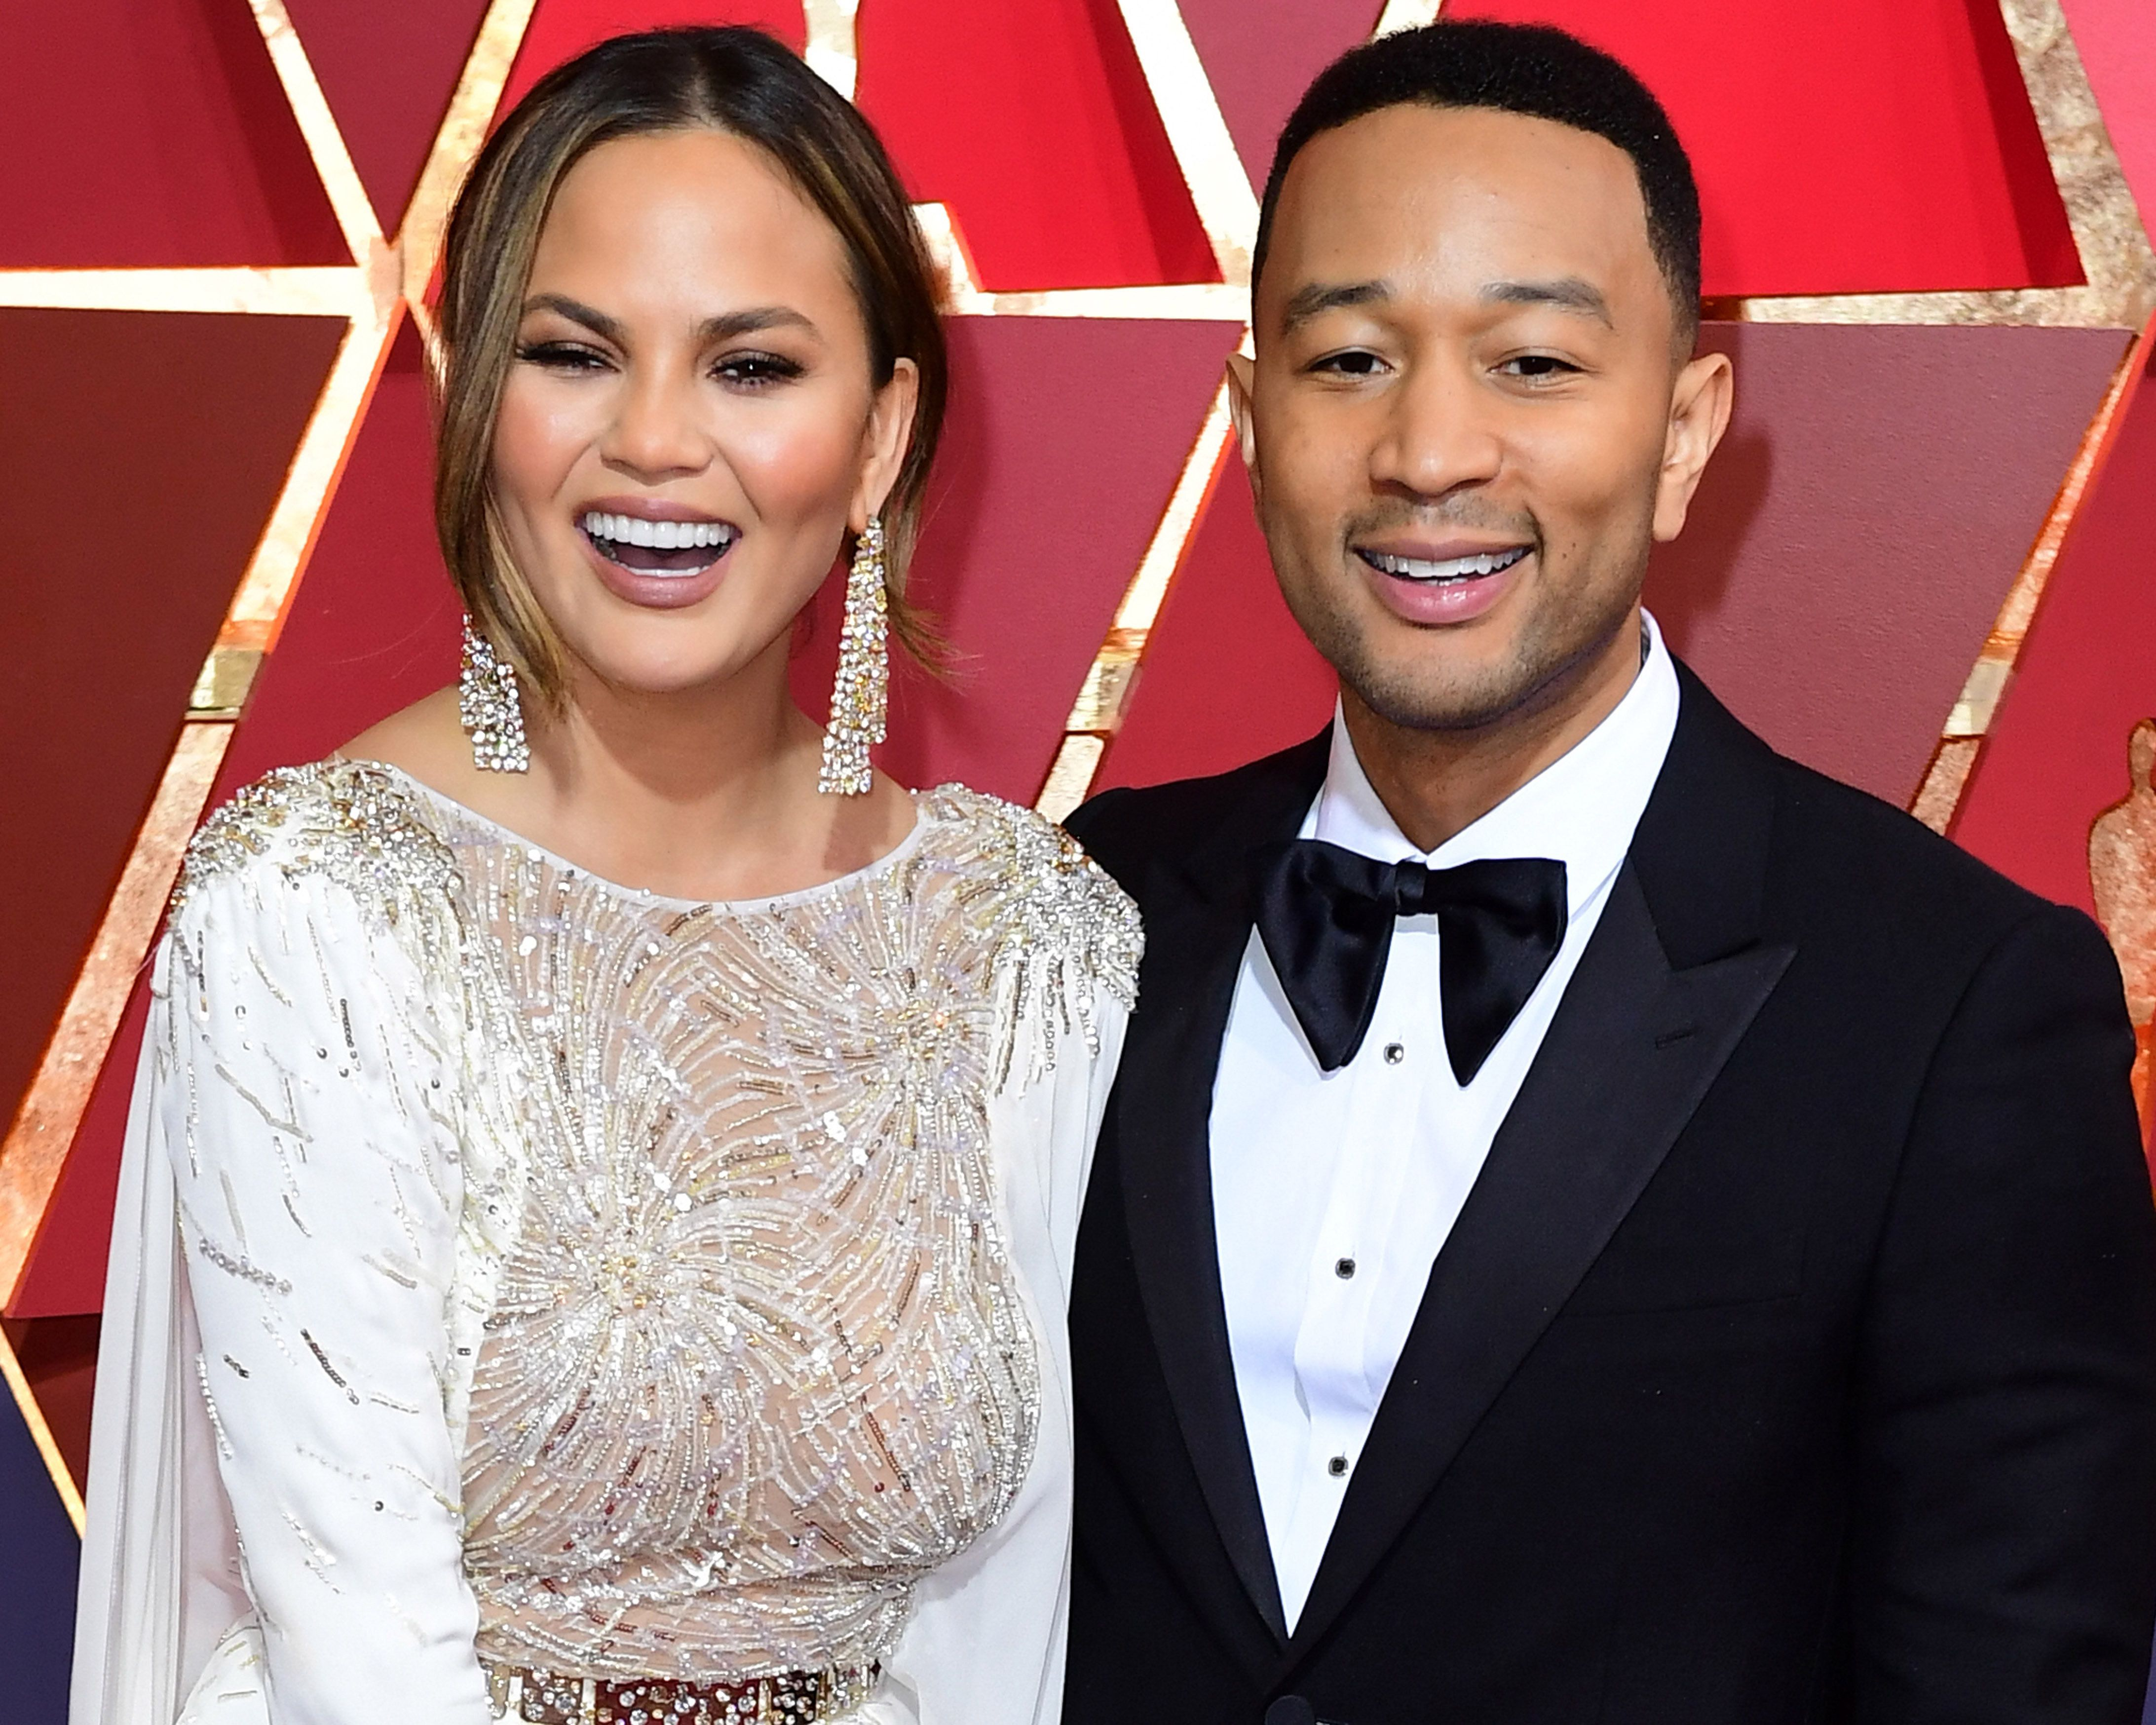 File photo dated 26/02/17 of Chrissy Teigen and John Legend, as Chrissy has scolded her husband for taking all of her phone chargers.